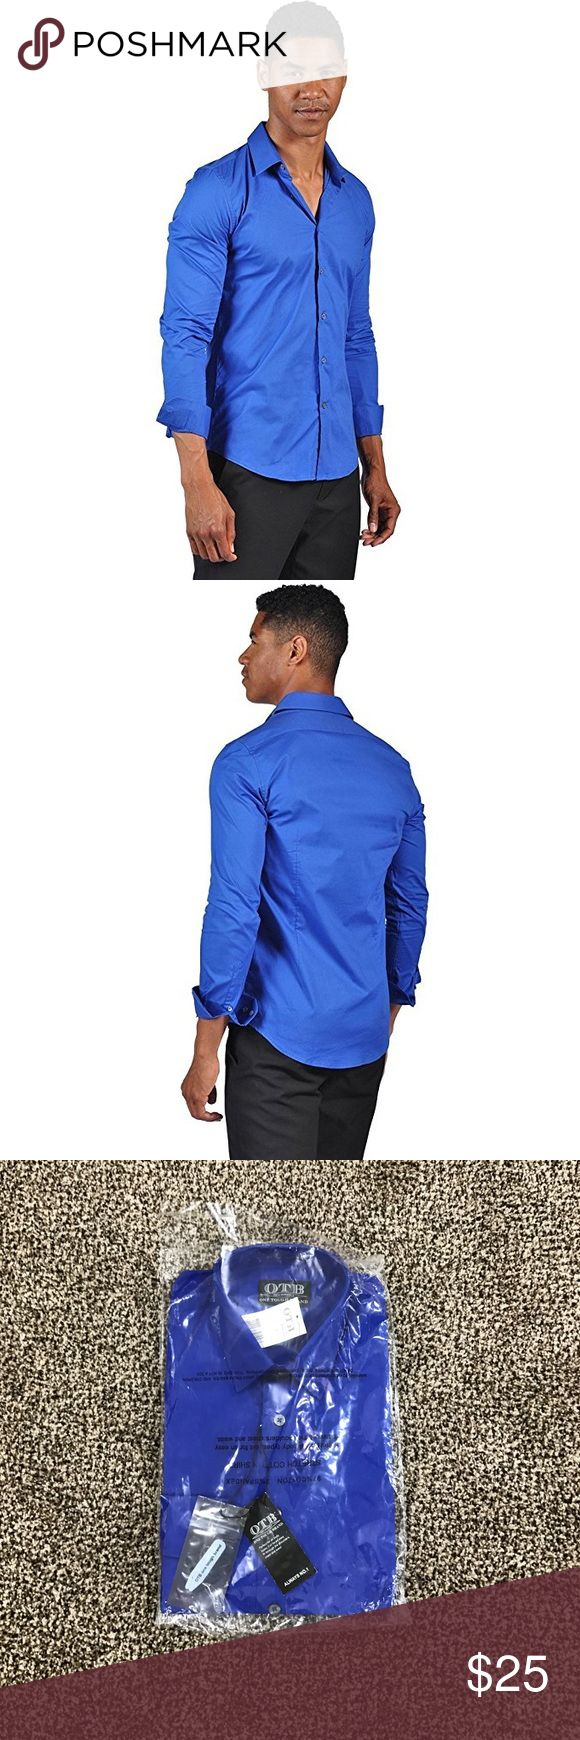 Royal Blue Button Up Dress Shirt OTB One Tough Brand Royal Blue Men's Dress Shirt Size Small (14/14.5) 97% cotton 3% spandex Slim Fitted Brand new in packaging with tags nicely folded. Perfect for all body tyoes. Cut for an easy fit through the shoulders, chest and waist. Collar stay bones. OTB Shirts Dress Shirts